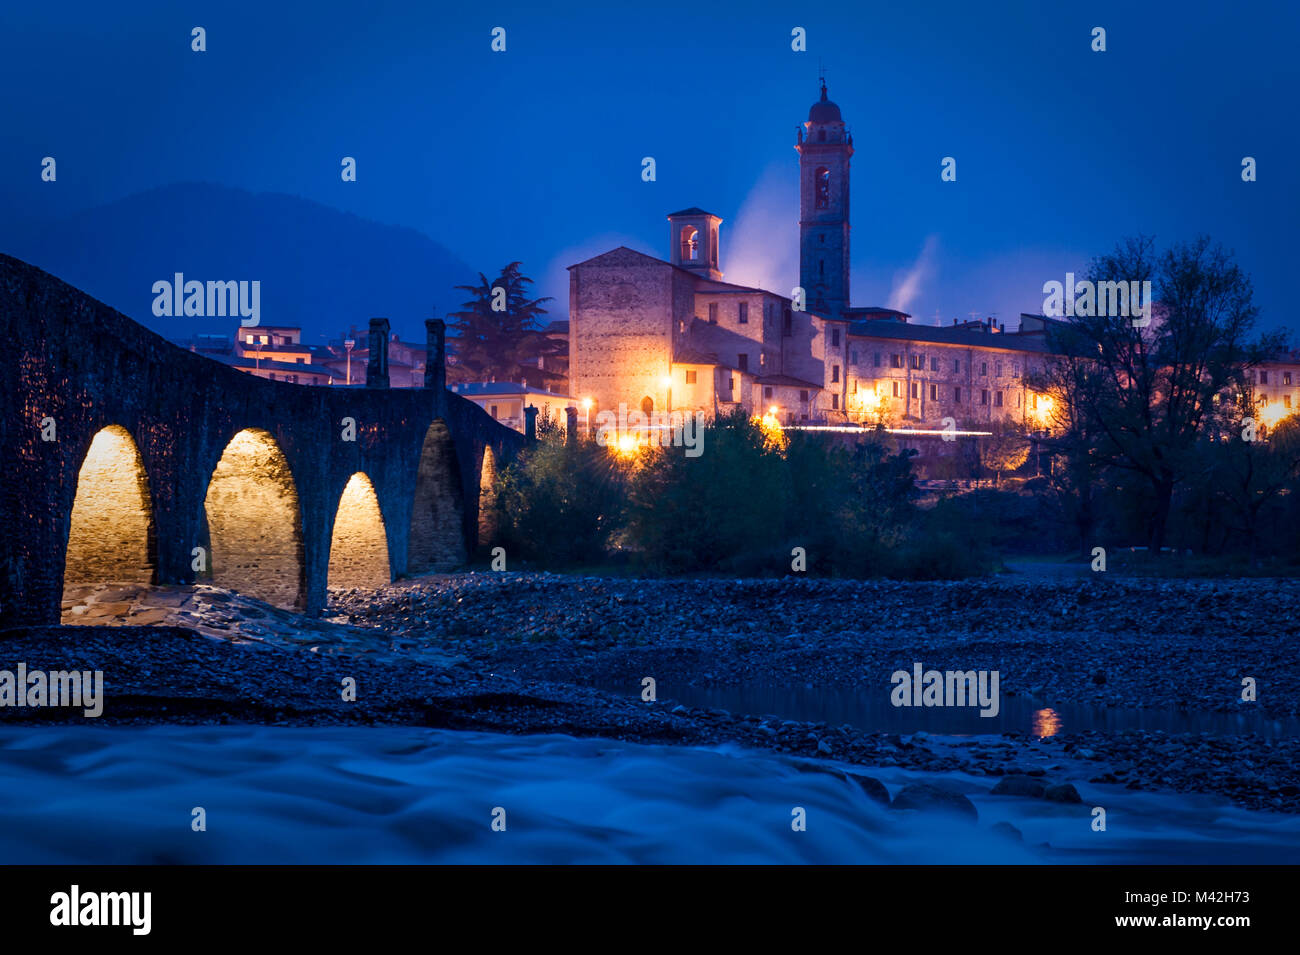 Bobbio, Trebbia Valley, Piacenza, Emilia Romagna, Italy. The small town near Trebbia river. - Stock Image